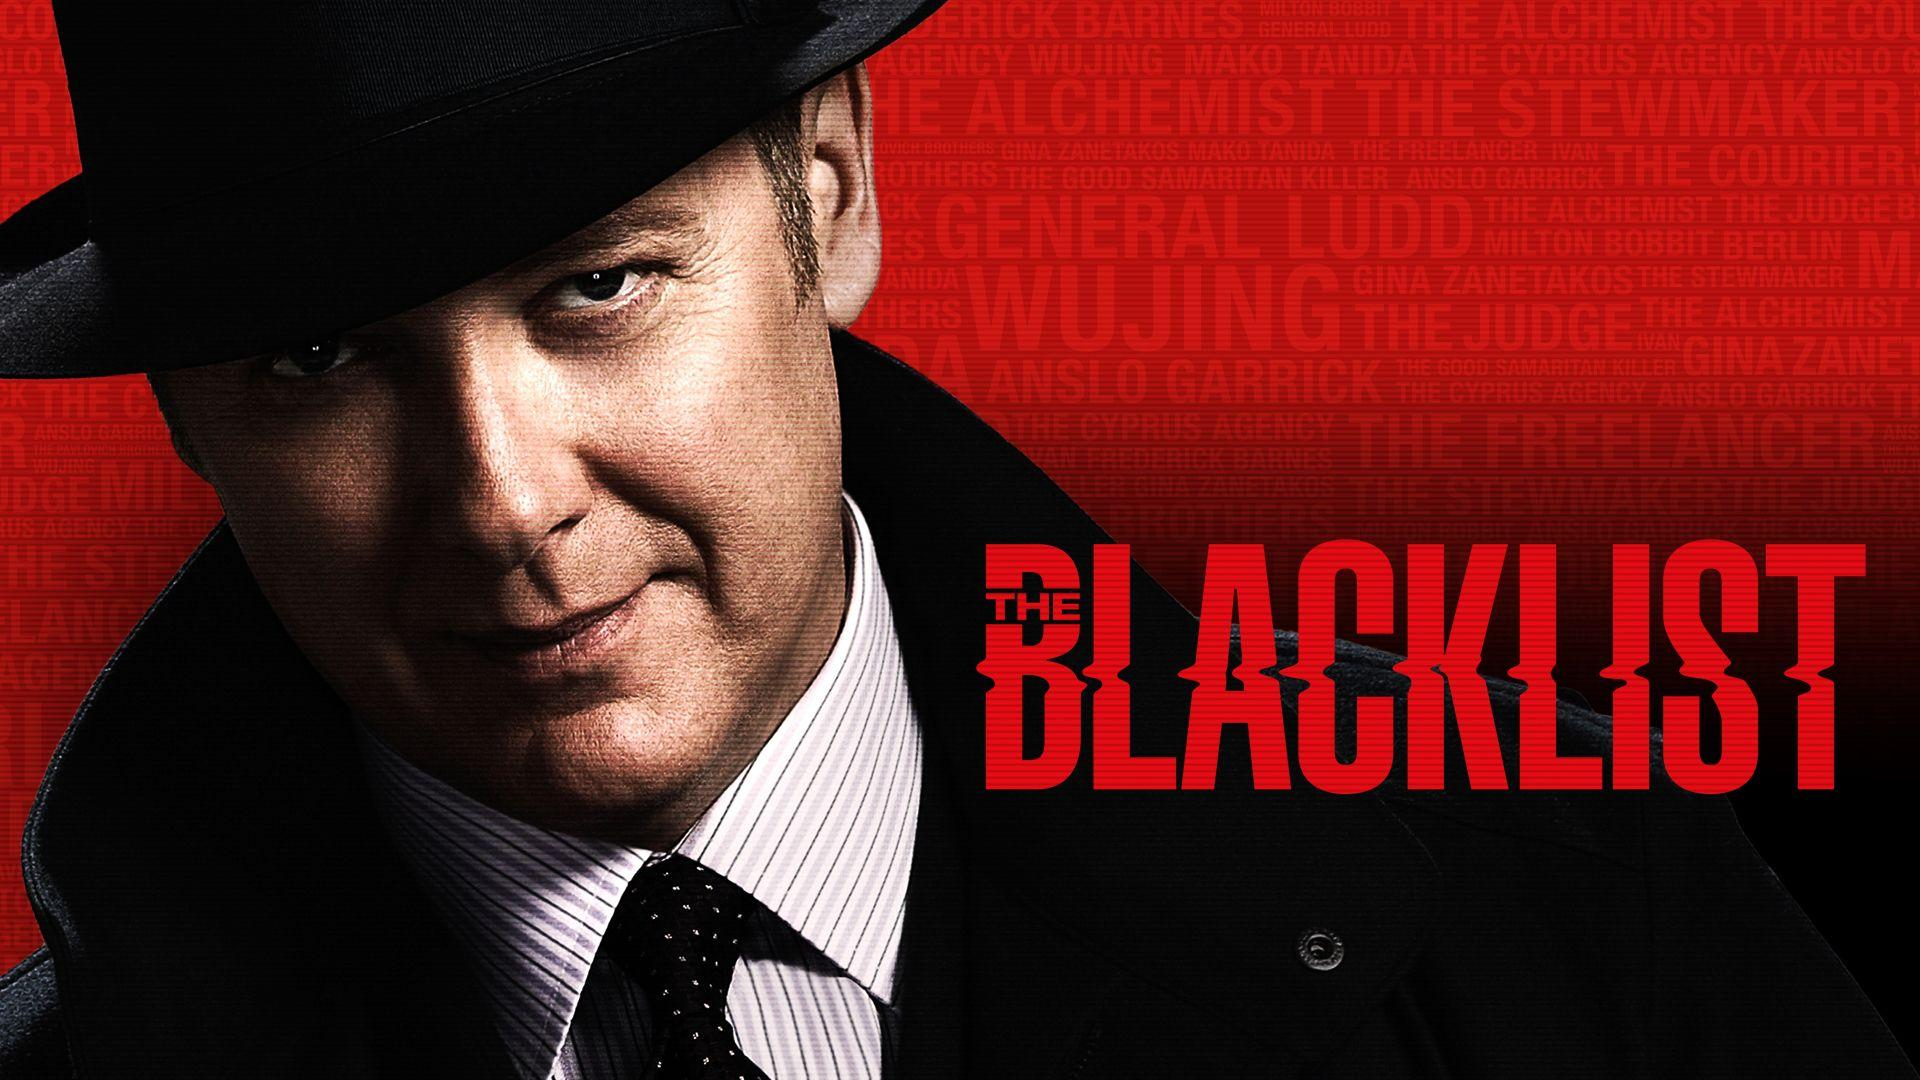 The Blacklists Background 10